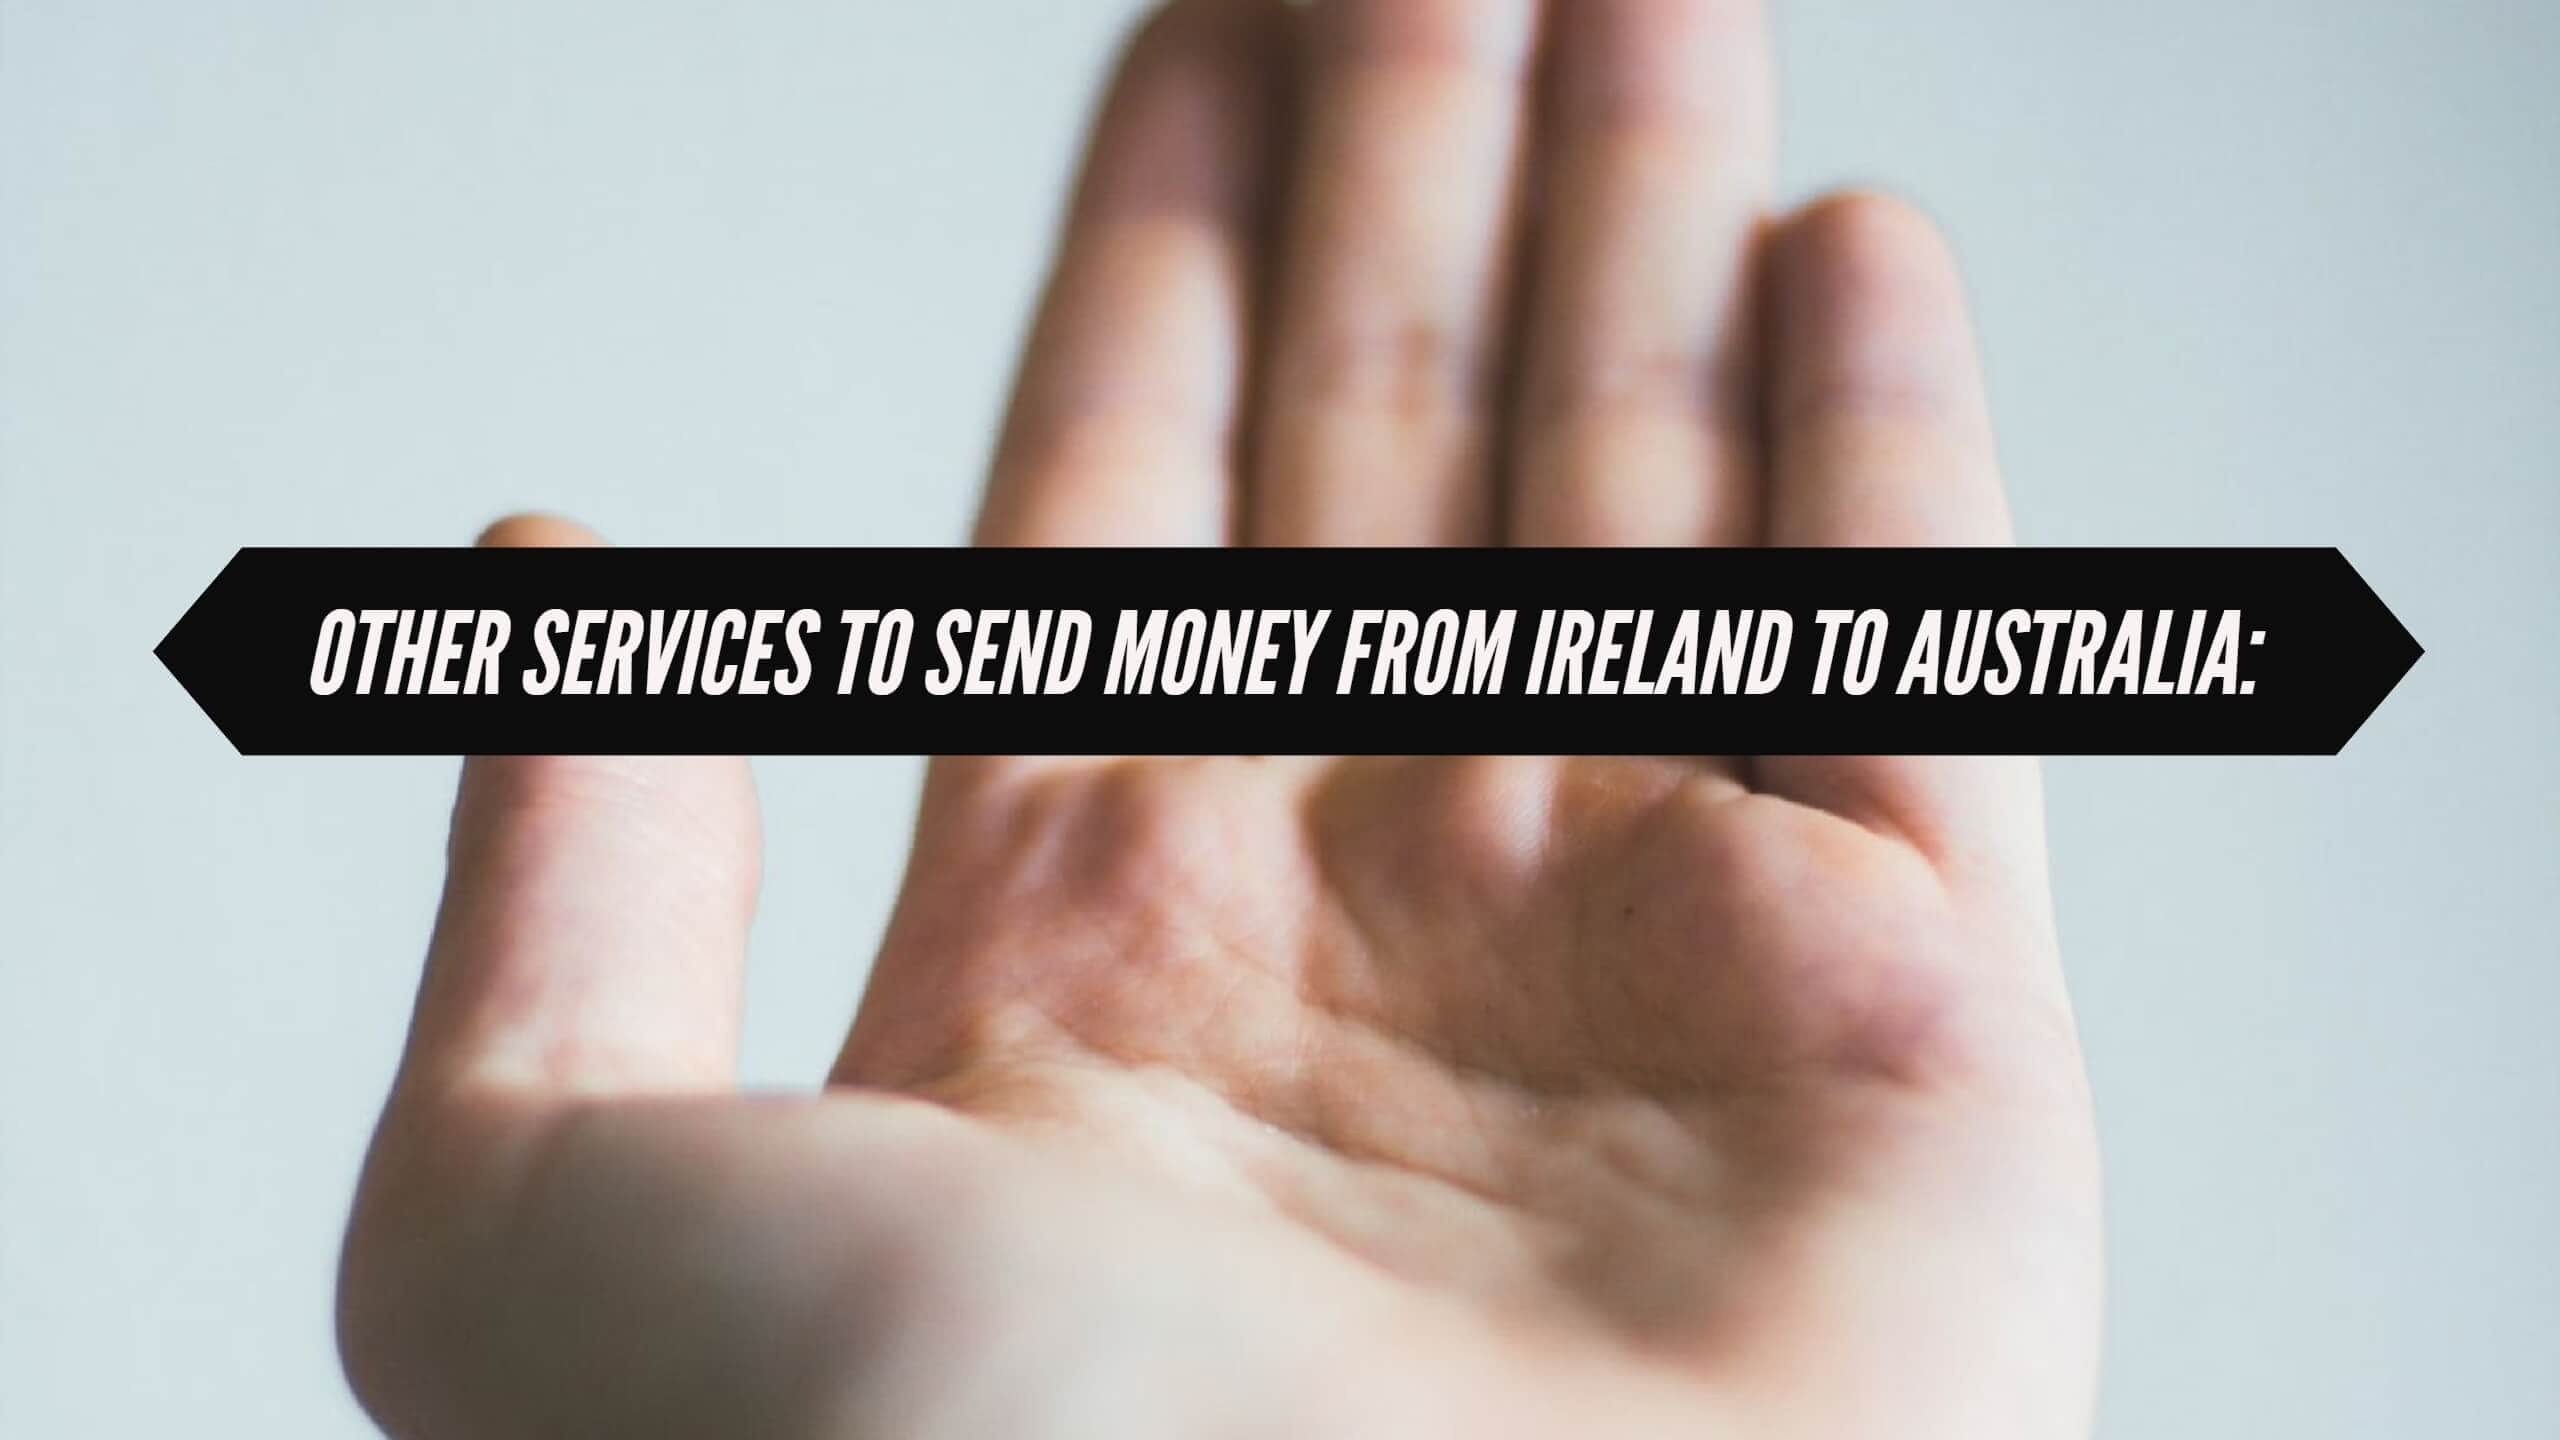 Other services to send money from Ireland to Australia.